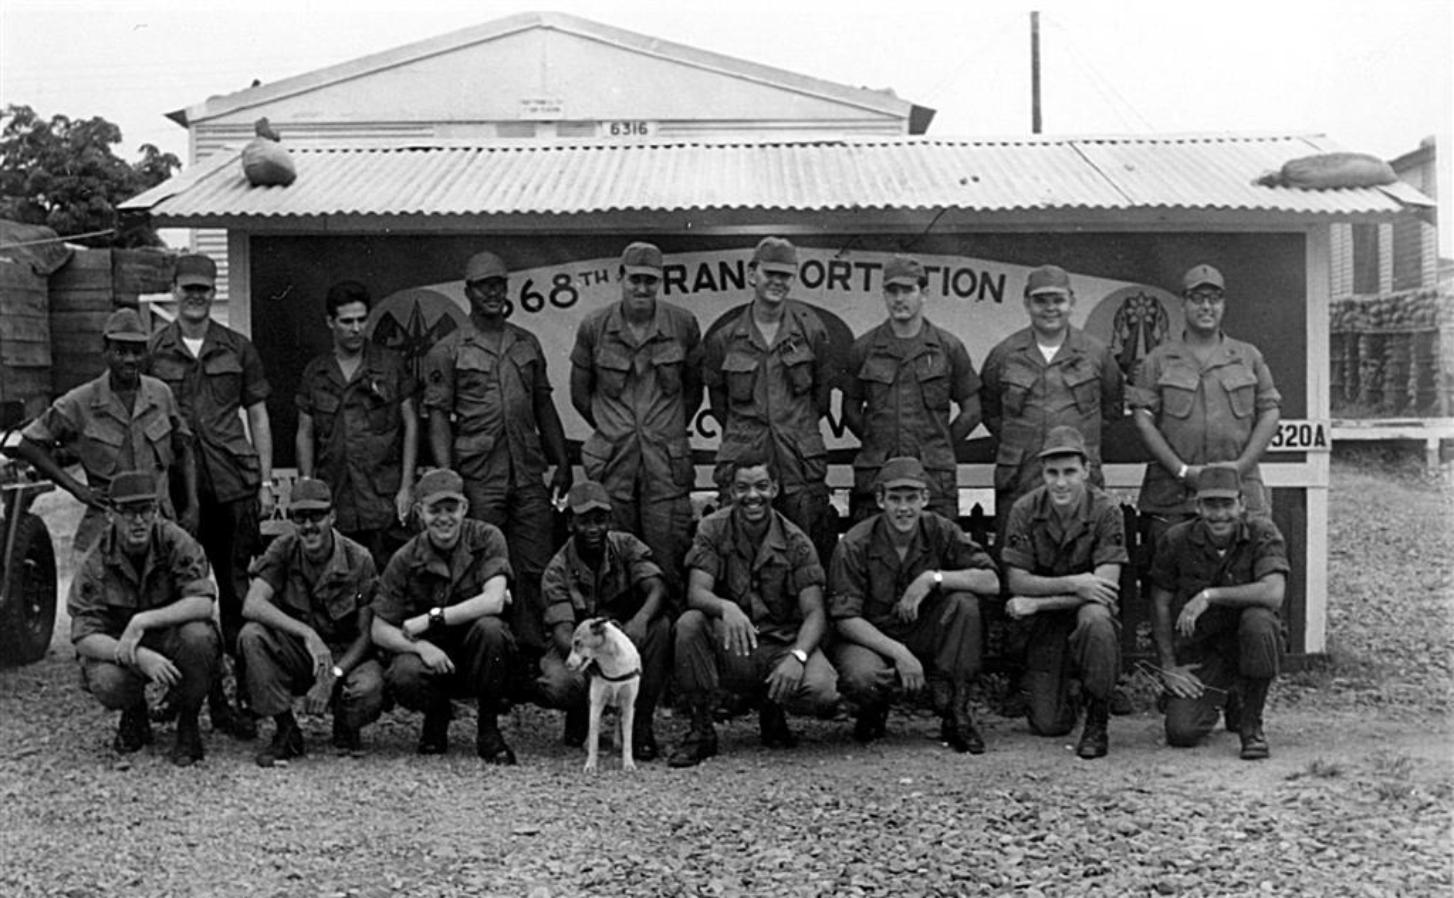 368th TC Group Photo - 1970